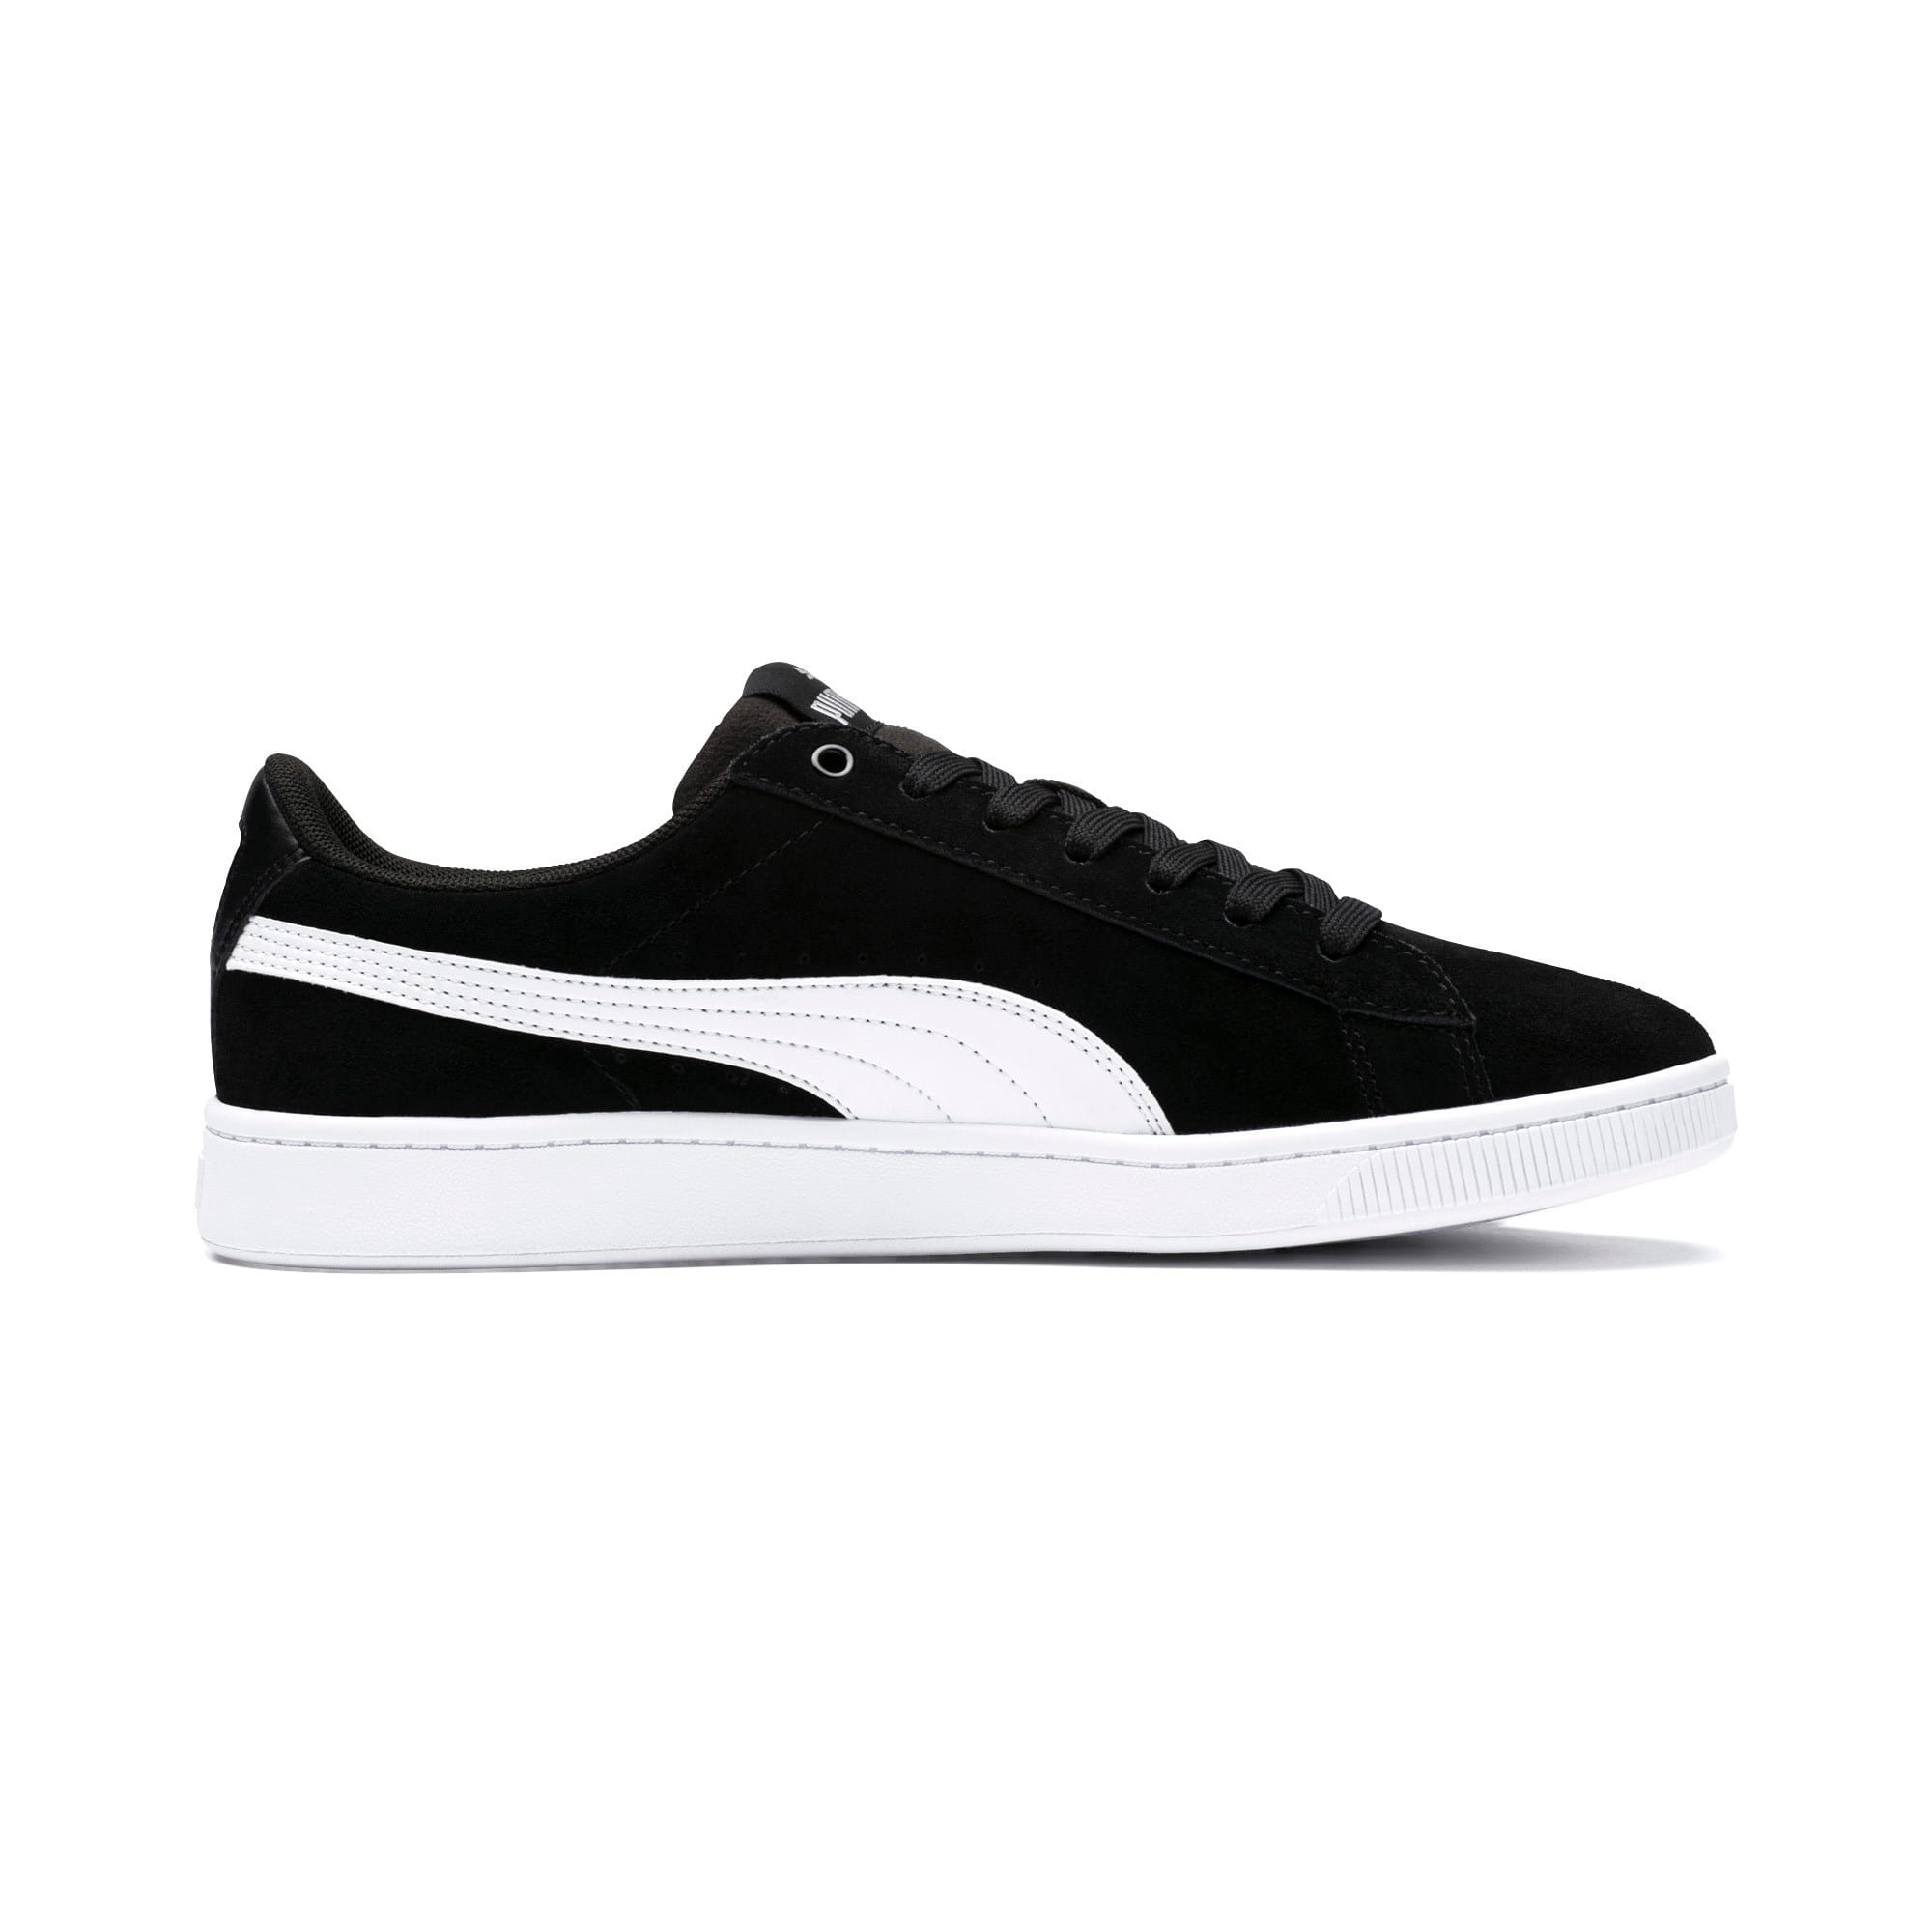 Thumbnail 5 of PUMA Vikky v2 Women's Sneakers, Puma Black-Puma White-Silver, medium